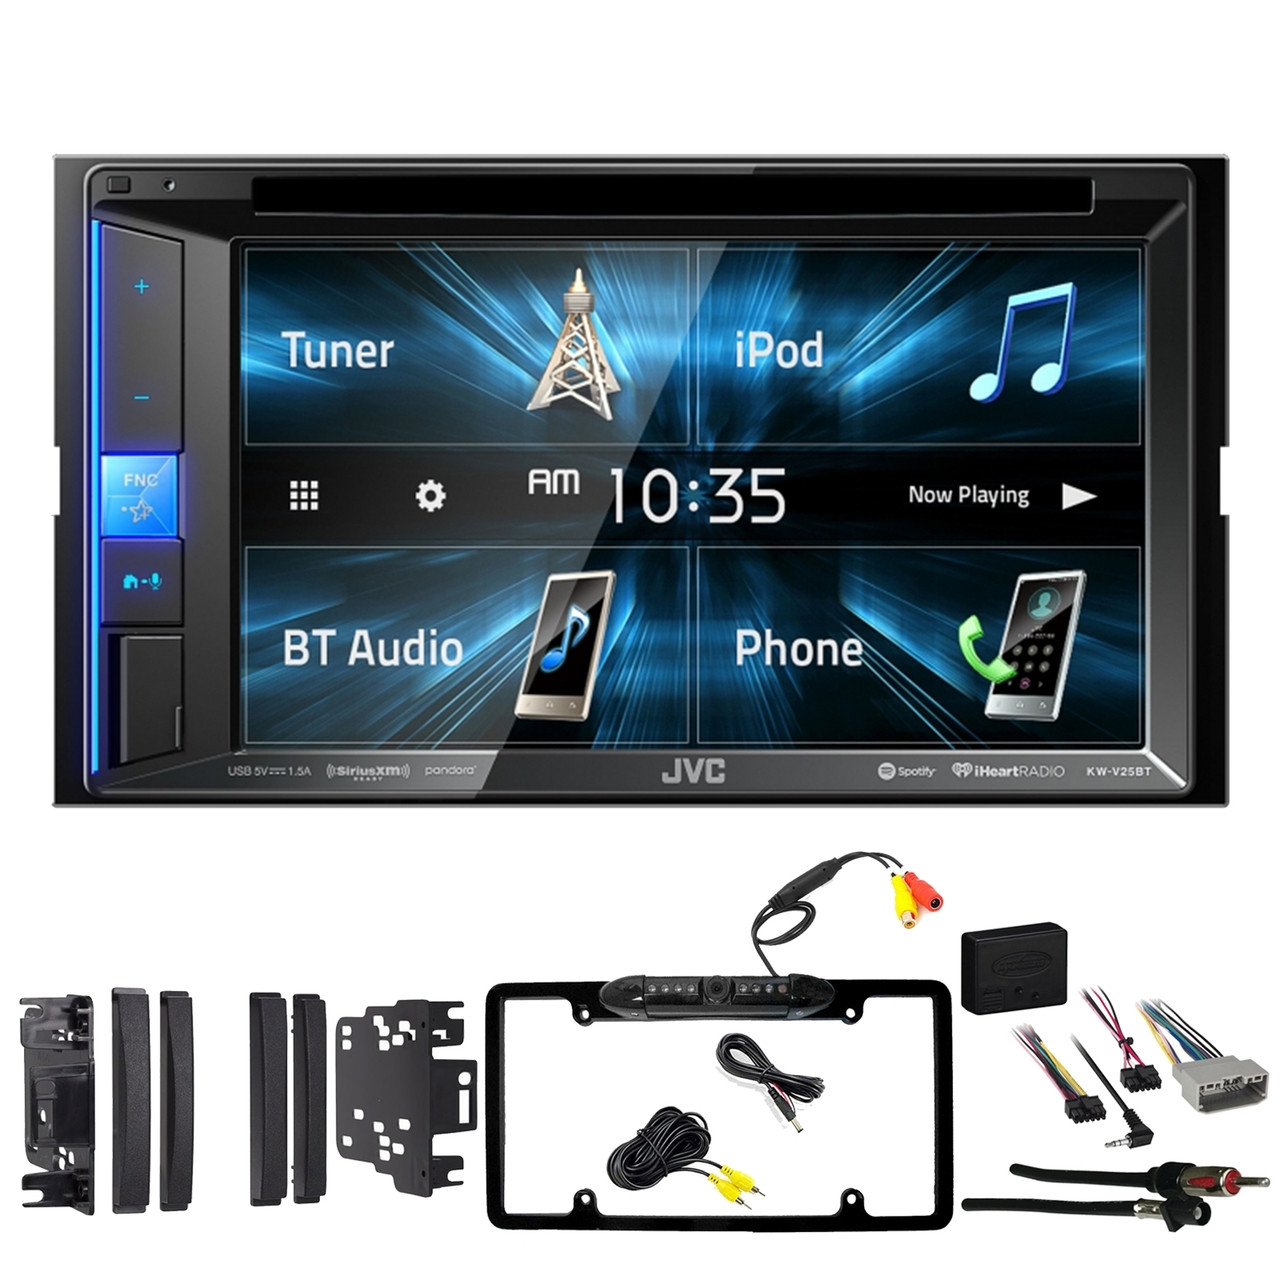 small resolution of jvc kw v25bt 6 2 double din bluetooth touchscreen stereo receiver metra dash kit for select 2007 up chrysler vehicles wiring interface antenna adapter